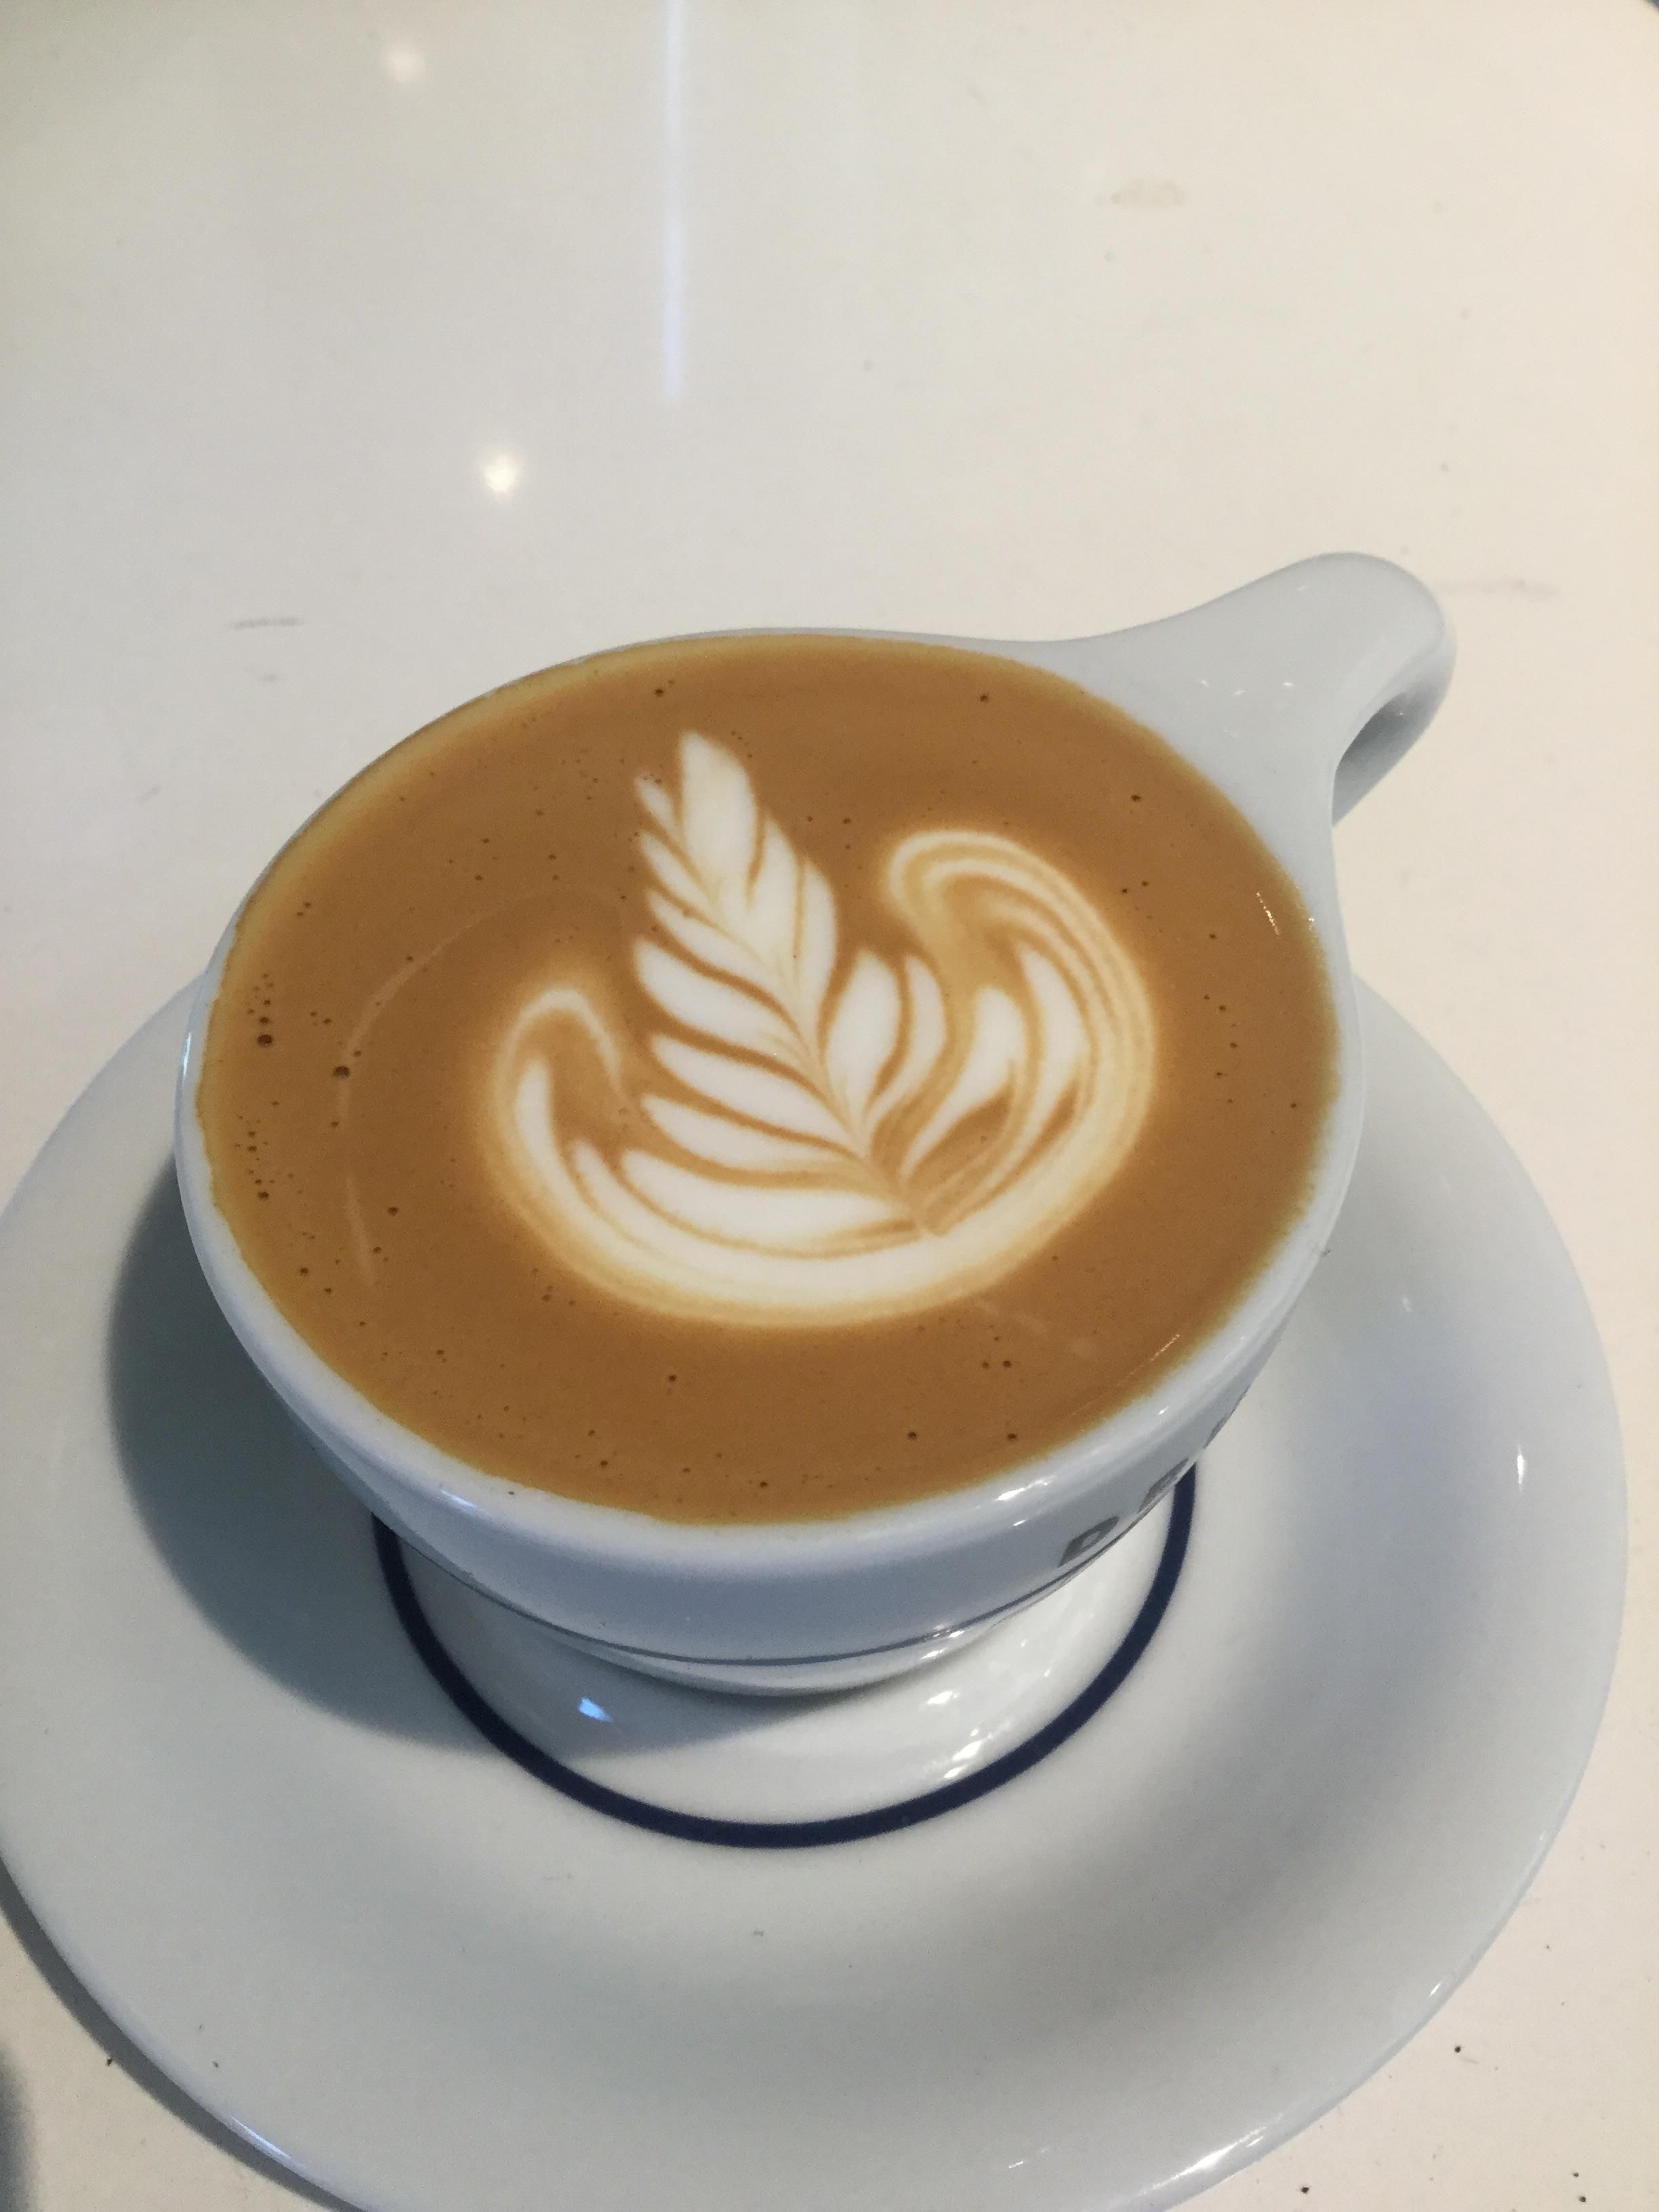 Pretty Stoked On This 1 5 Oz Demitasse Pour From This Morning Coffee Cafe Espresso Photography Coffeeaddict Yummy Barista Coffee Addict Coffee Art Yummy